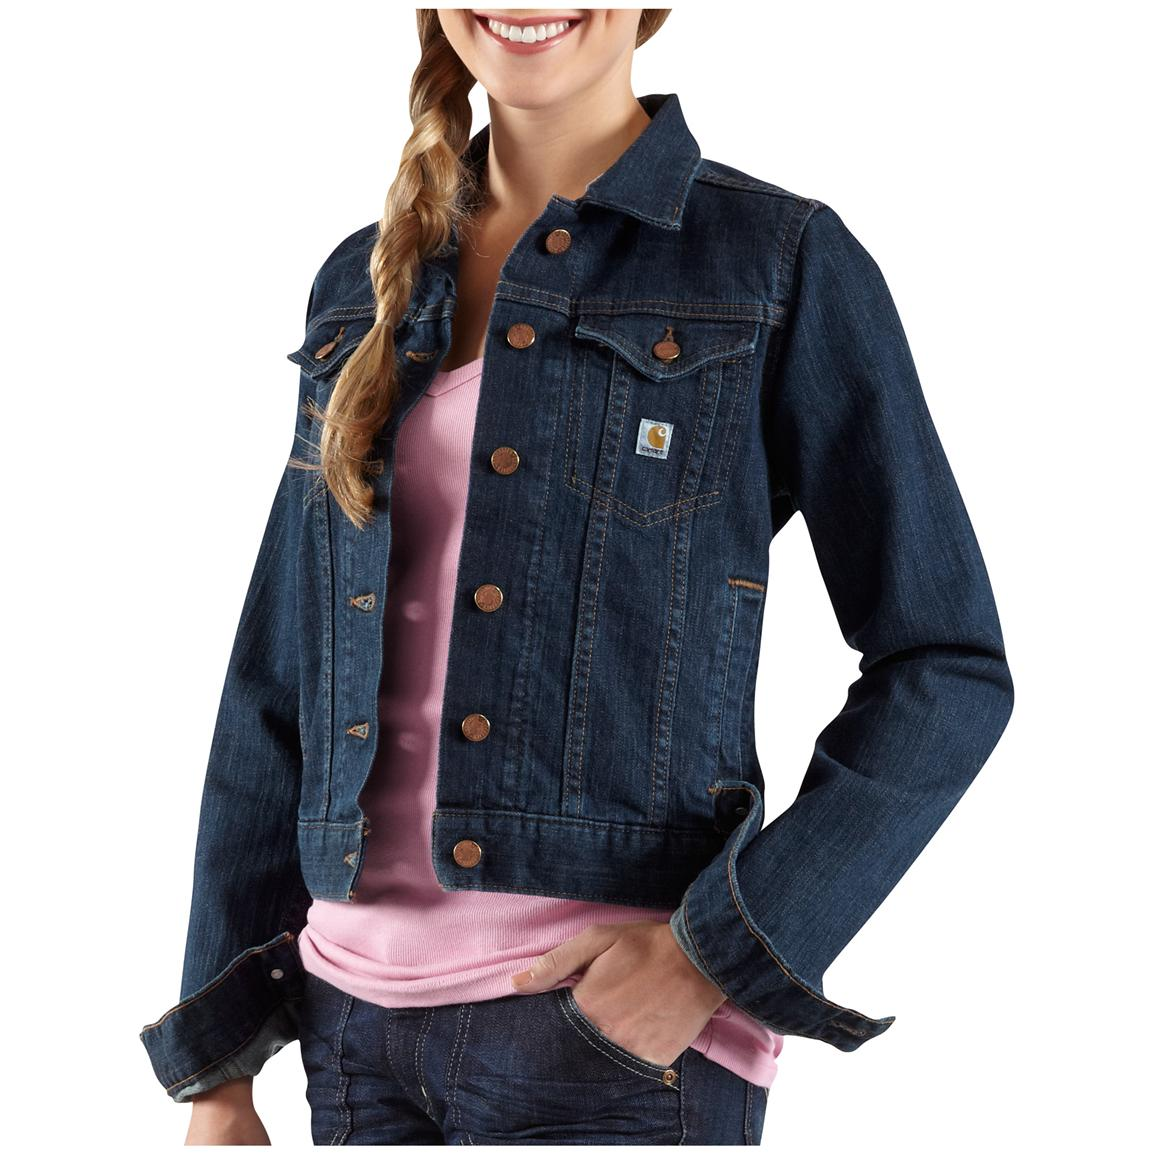 2016 Kot Ceket Modelleri ve Kombinleri Denim-Jacket-Women-Models